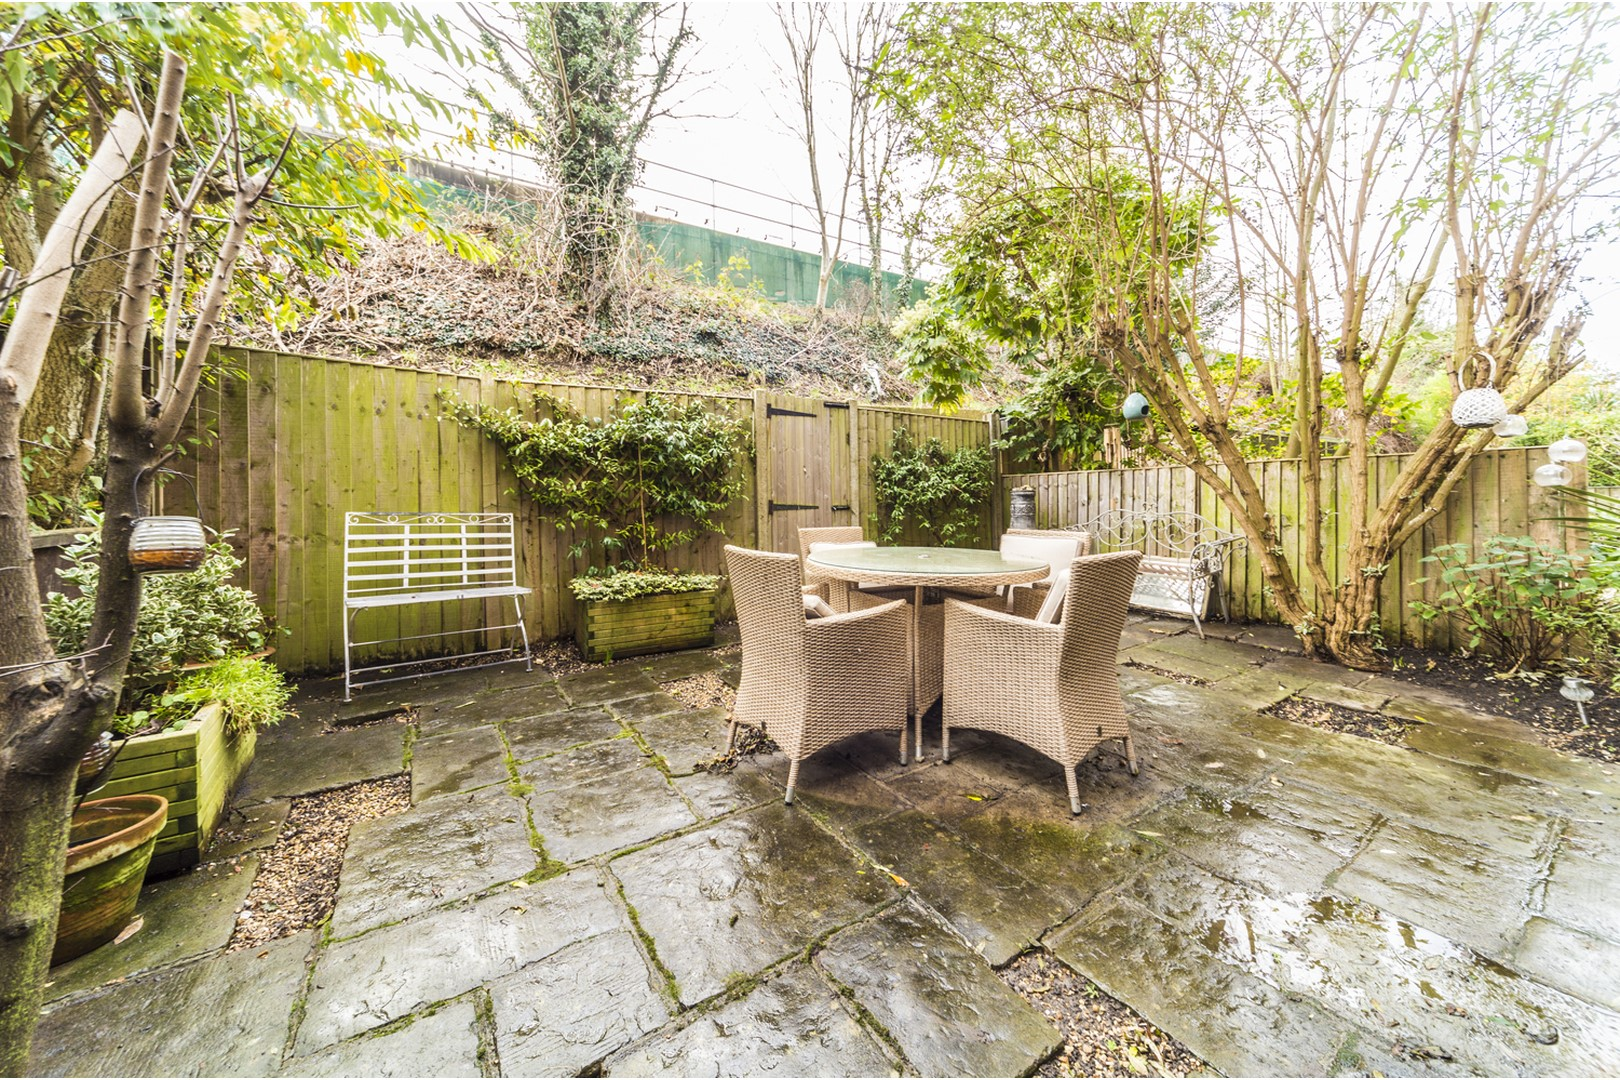 Bed Properties To Rent In Chiswick